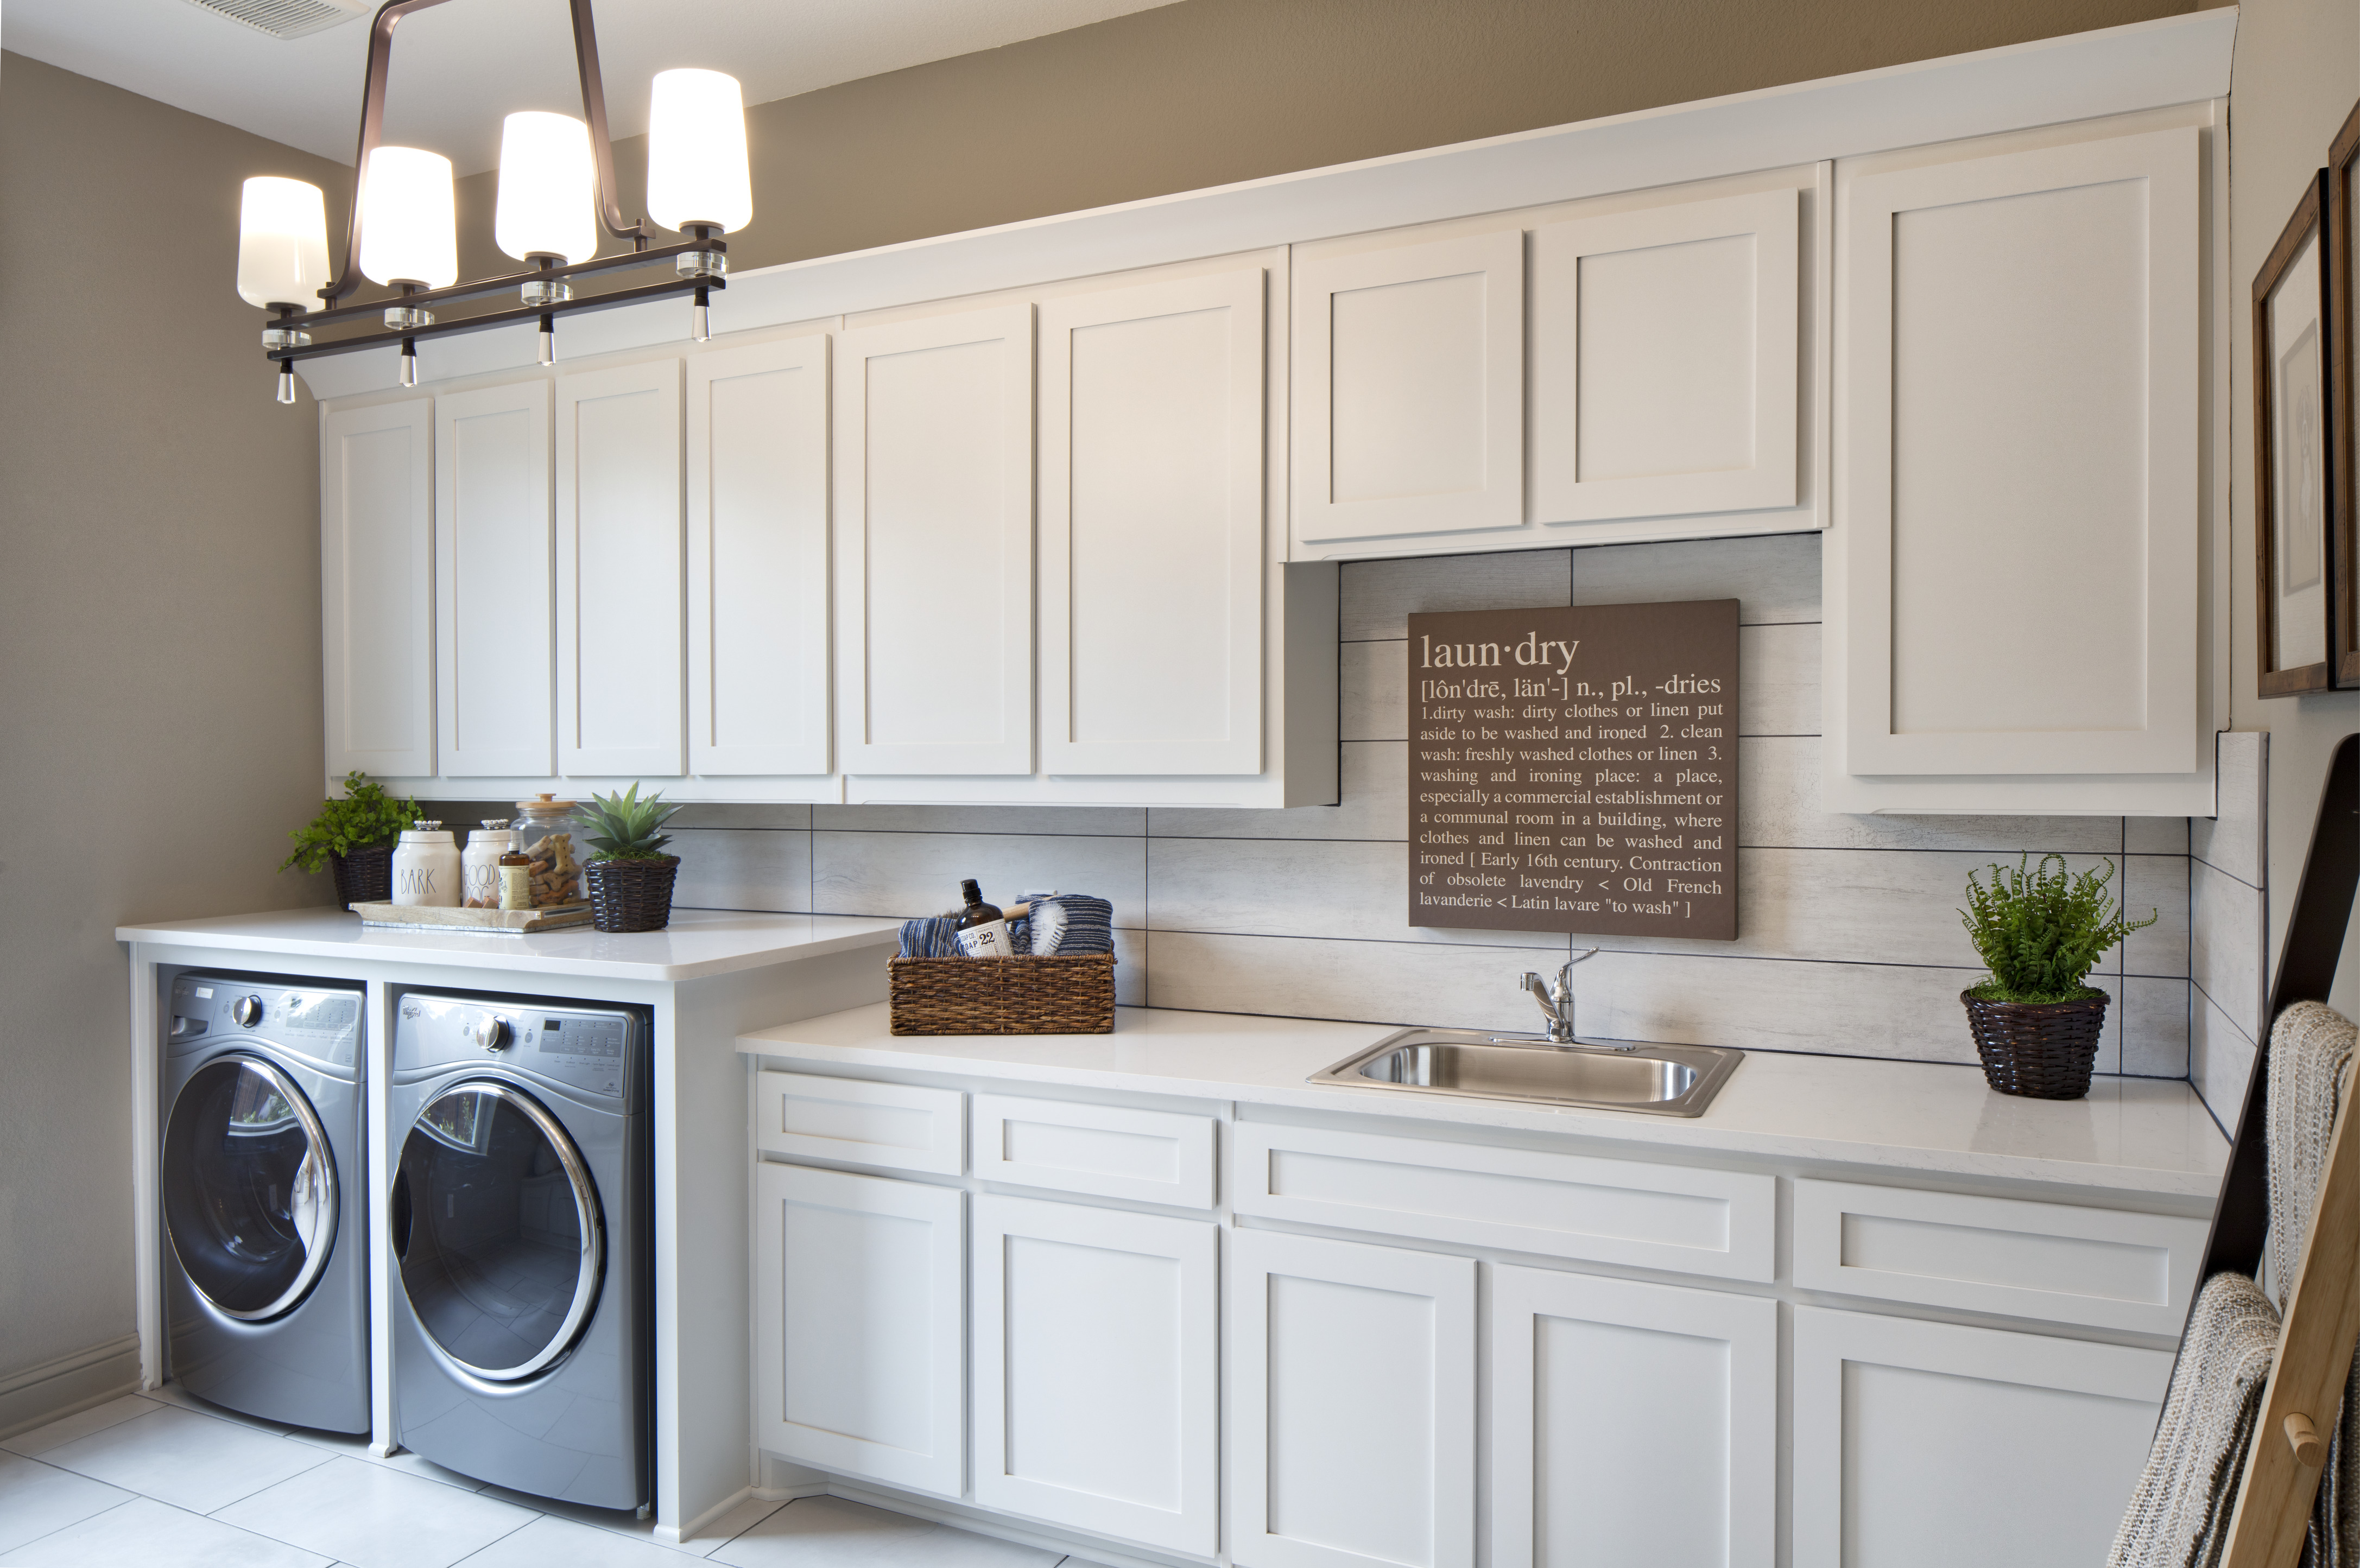 Mudroom with washer and dryer and white cabinets